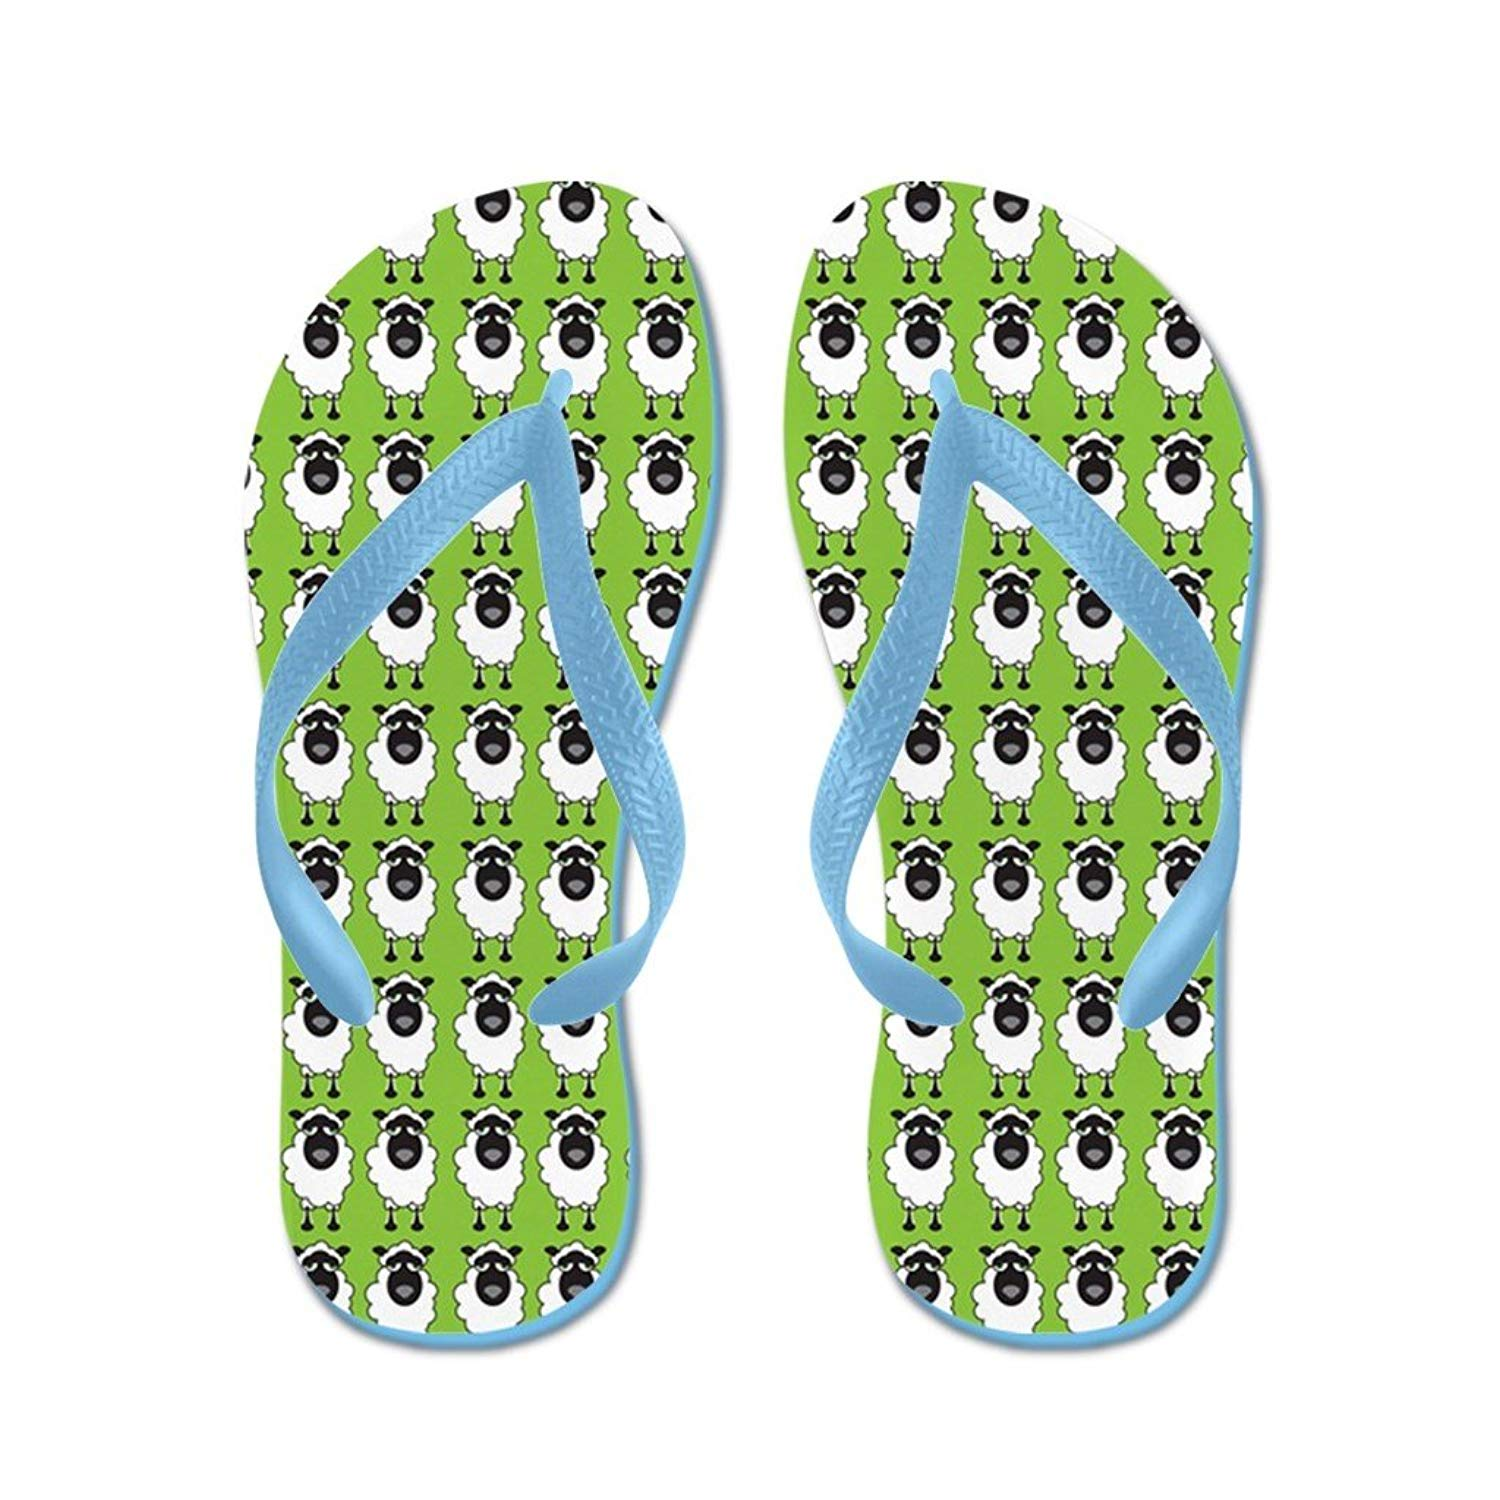 Lplpol Rainbow Wave Flip Flops for Kids and Adult Unisex Beach Sandals Pool Shoes Party Slippers